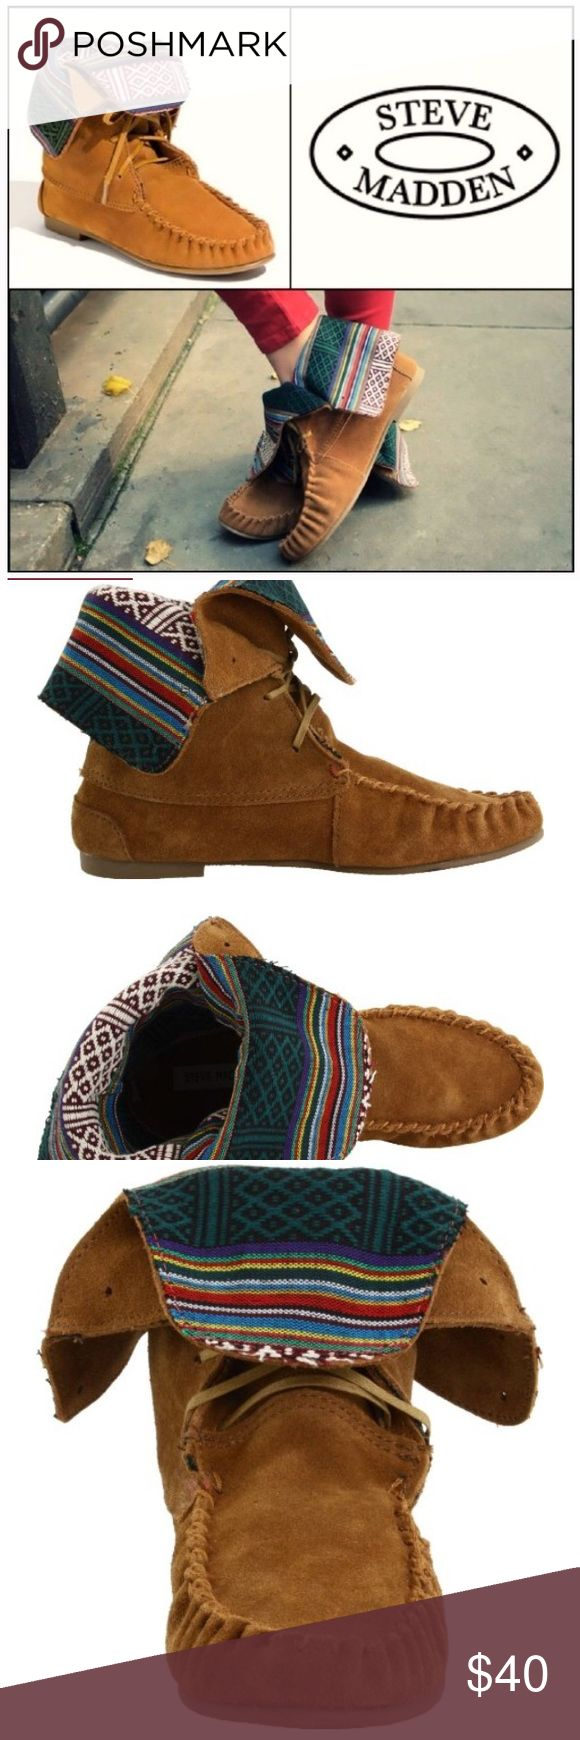 Steven Madden Moccasin Ankle Boots Steve Madden Tblanket Moccasin lace up suede Ankle Booties - worn twice! Like NEW condition! Steve Madden Shoes Ankle Boots & Booties